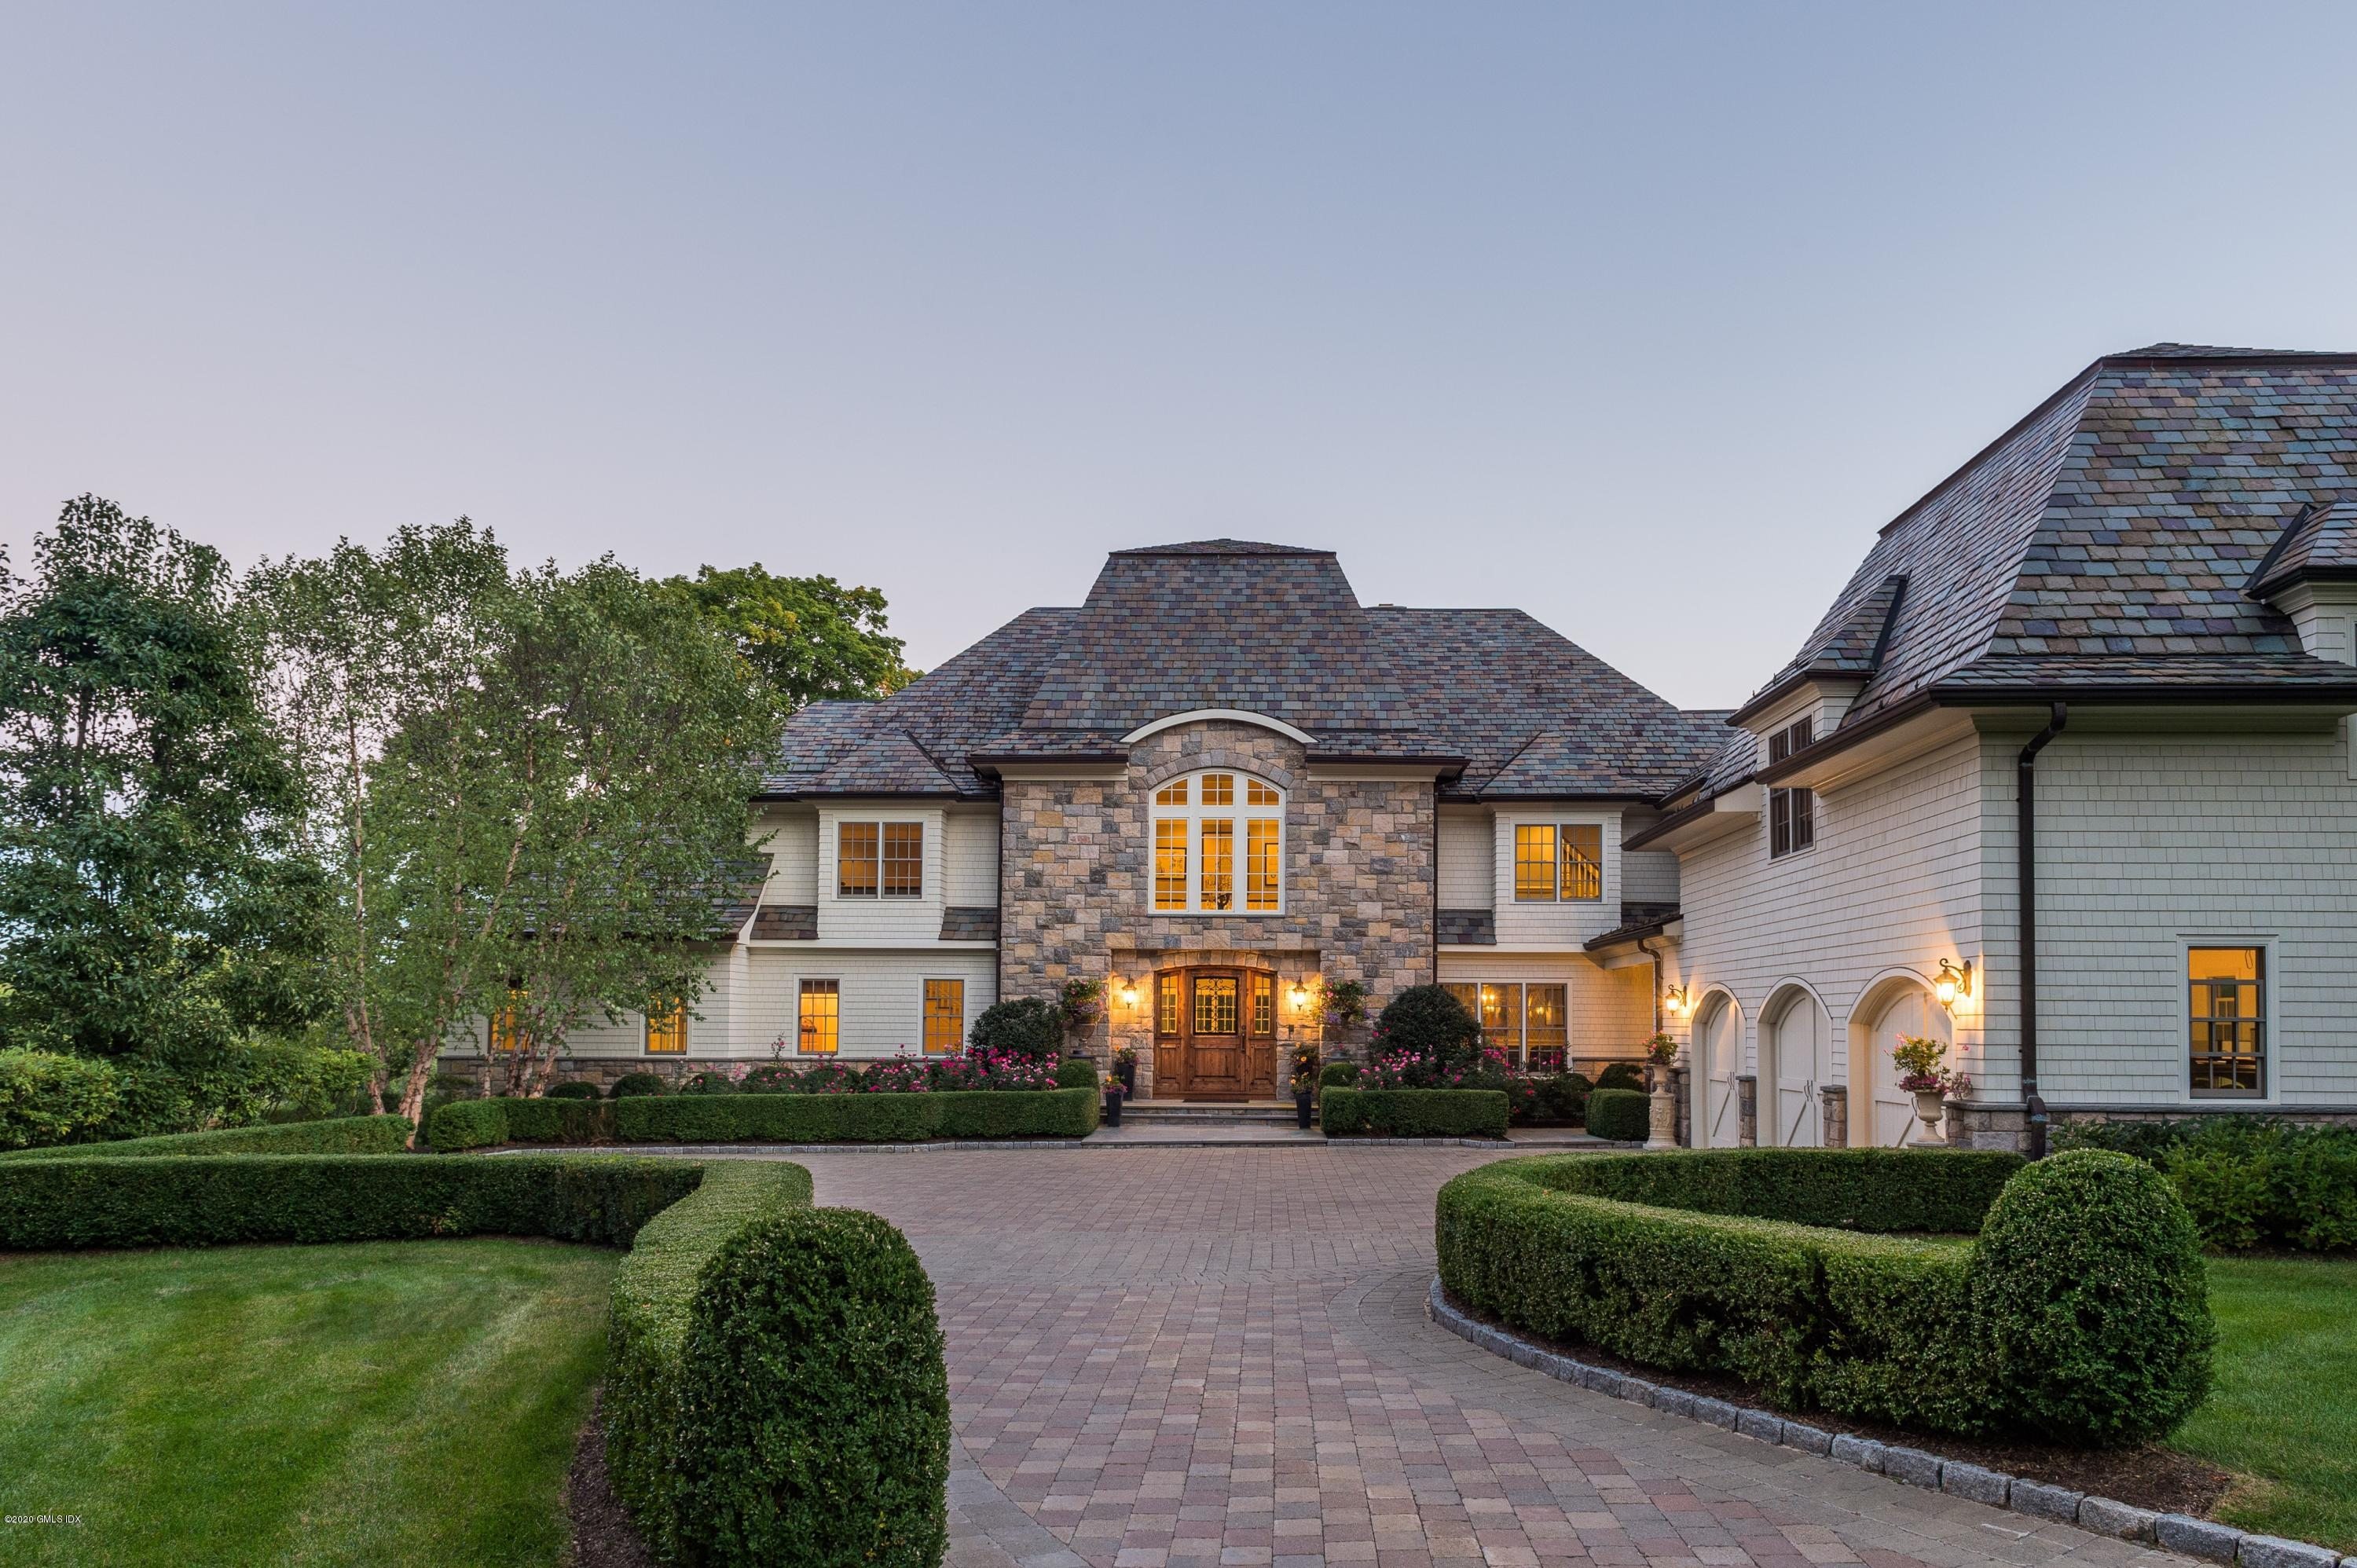 7 Chieftans Road,Greenwich,Connecticut 06831,4 Bedrooms Bedrooms,7 BathroomsBathrooms,Single family,Chieftans,108797